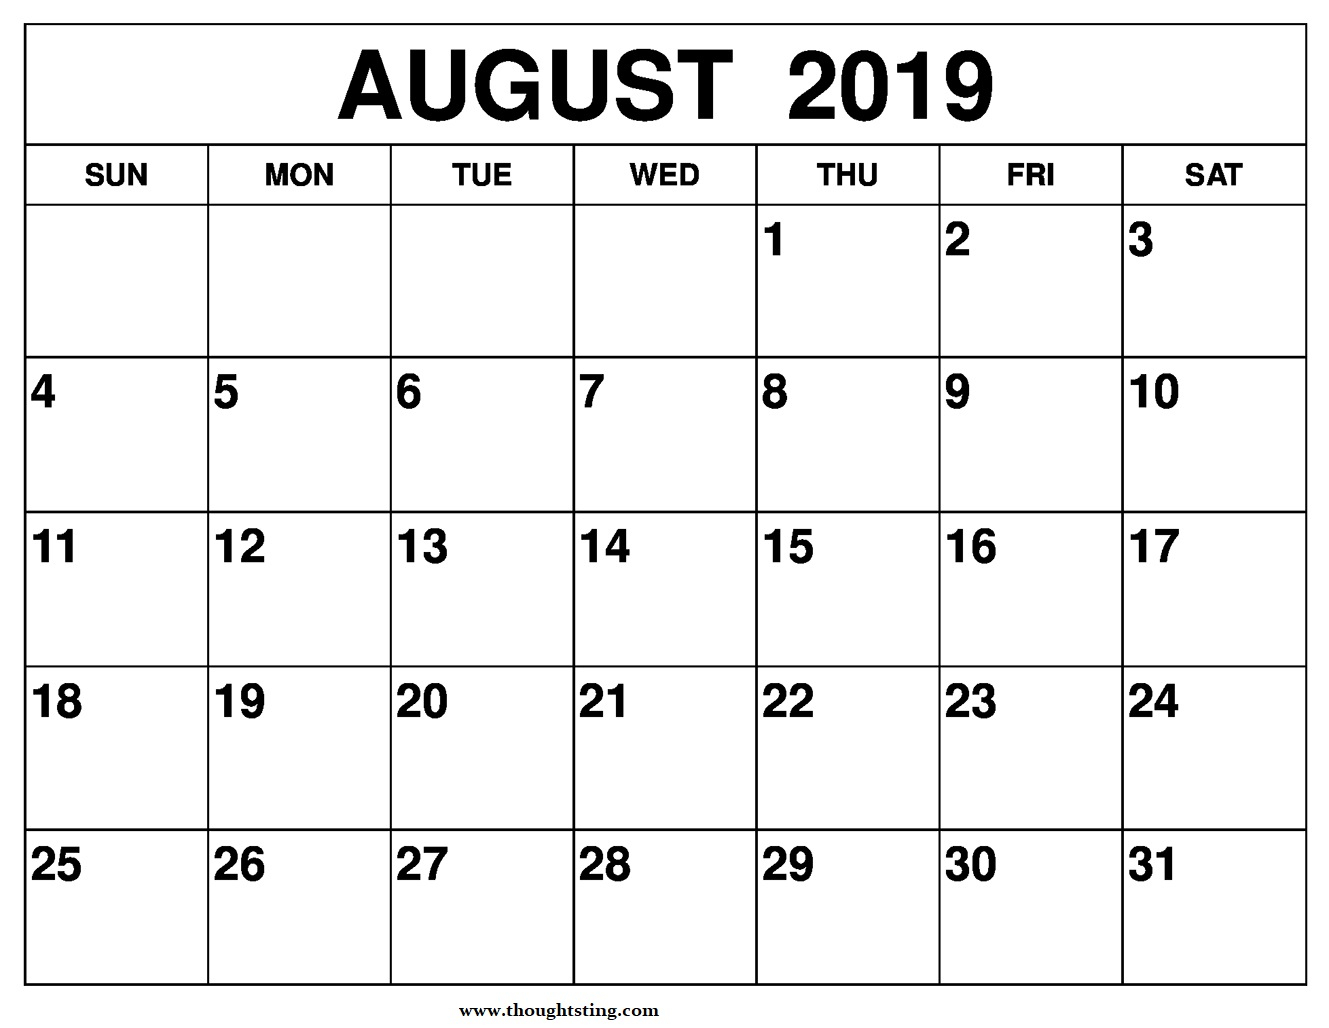 August 2019 Calendar Printable A4 Size - Free Printable